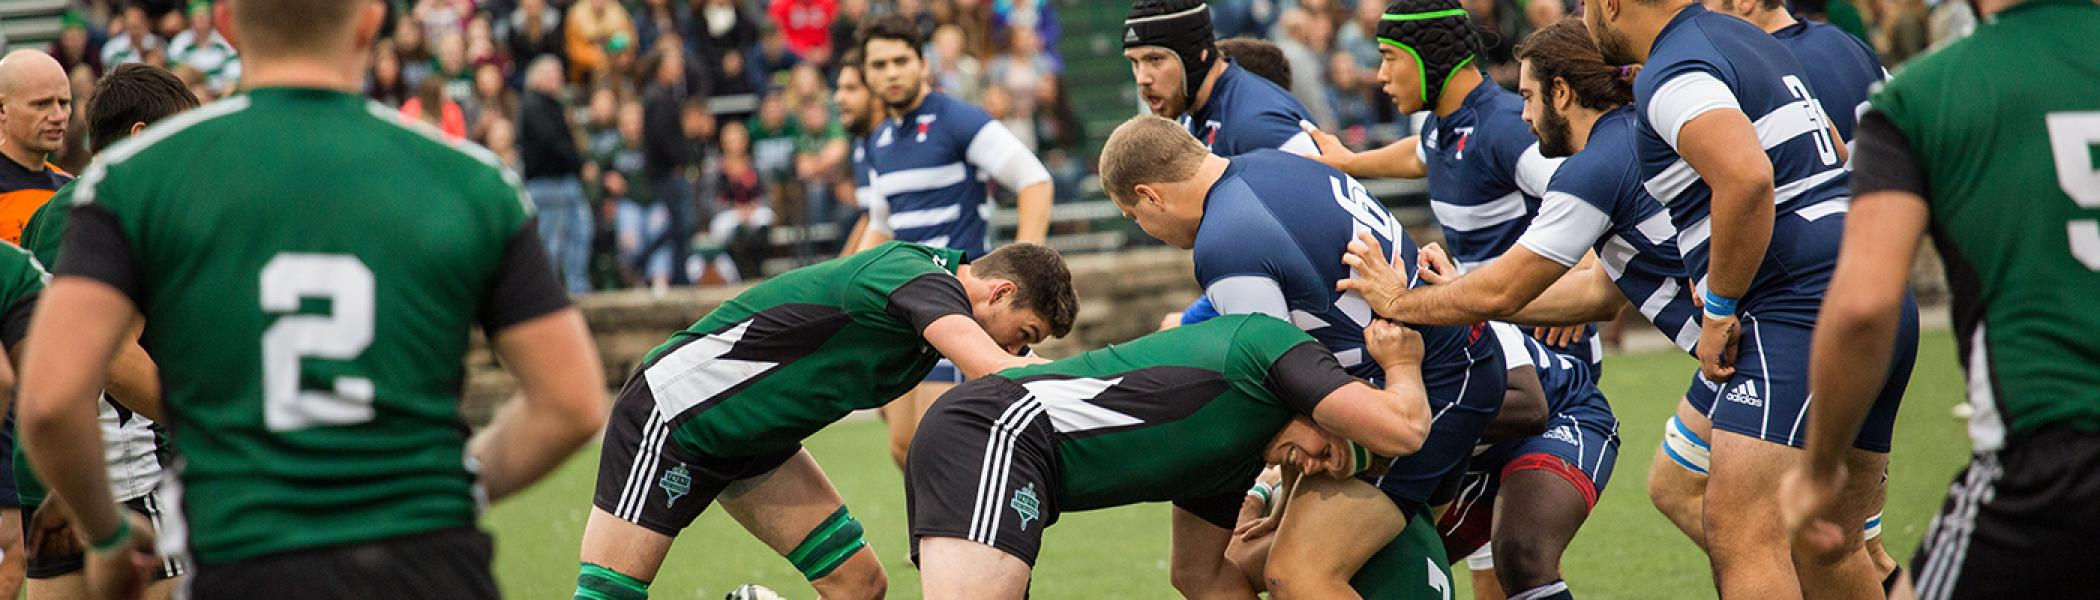 Men's rugby match on at the Athletic's Centre on the field